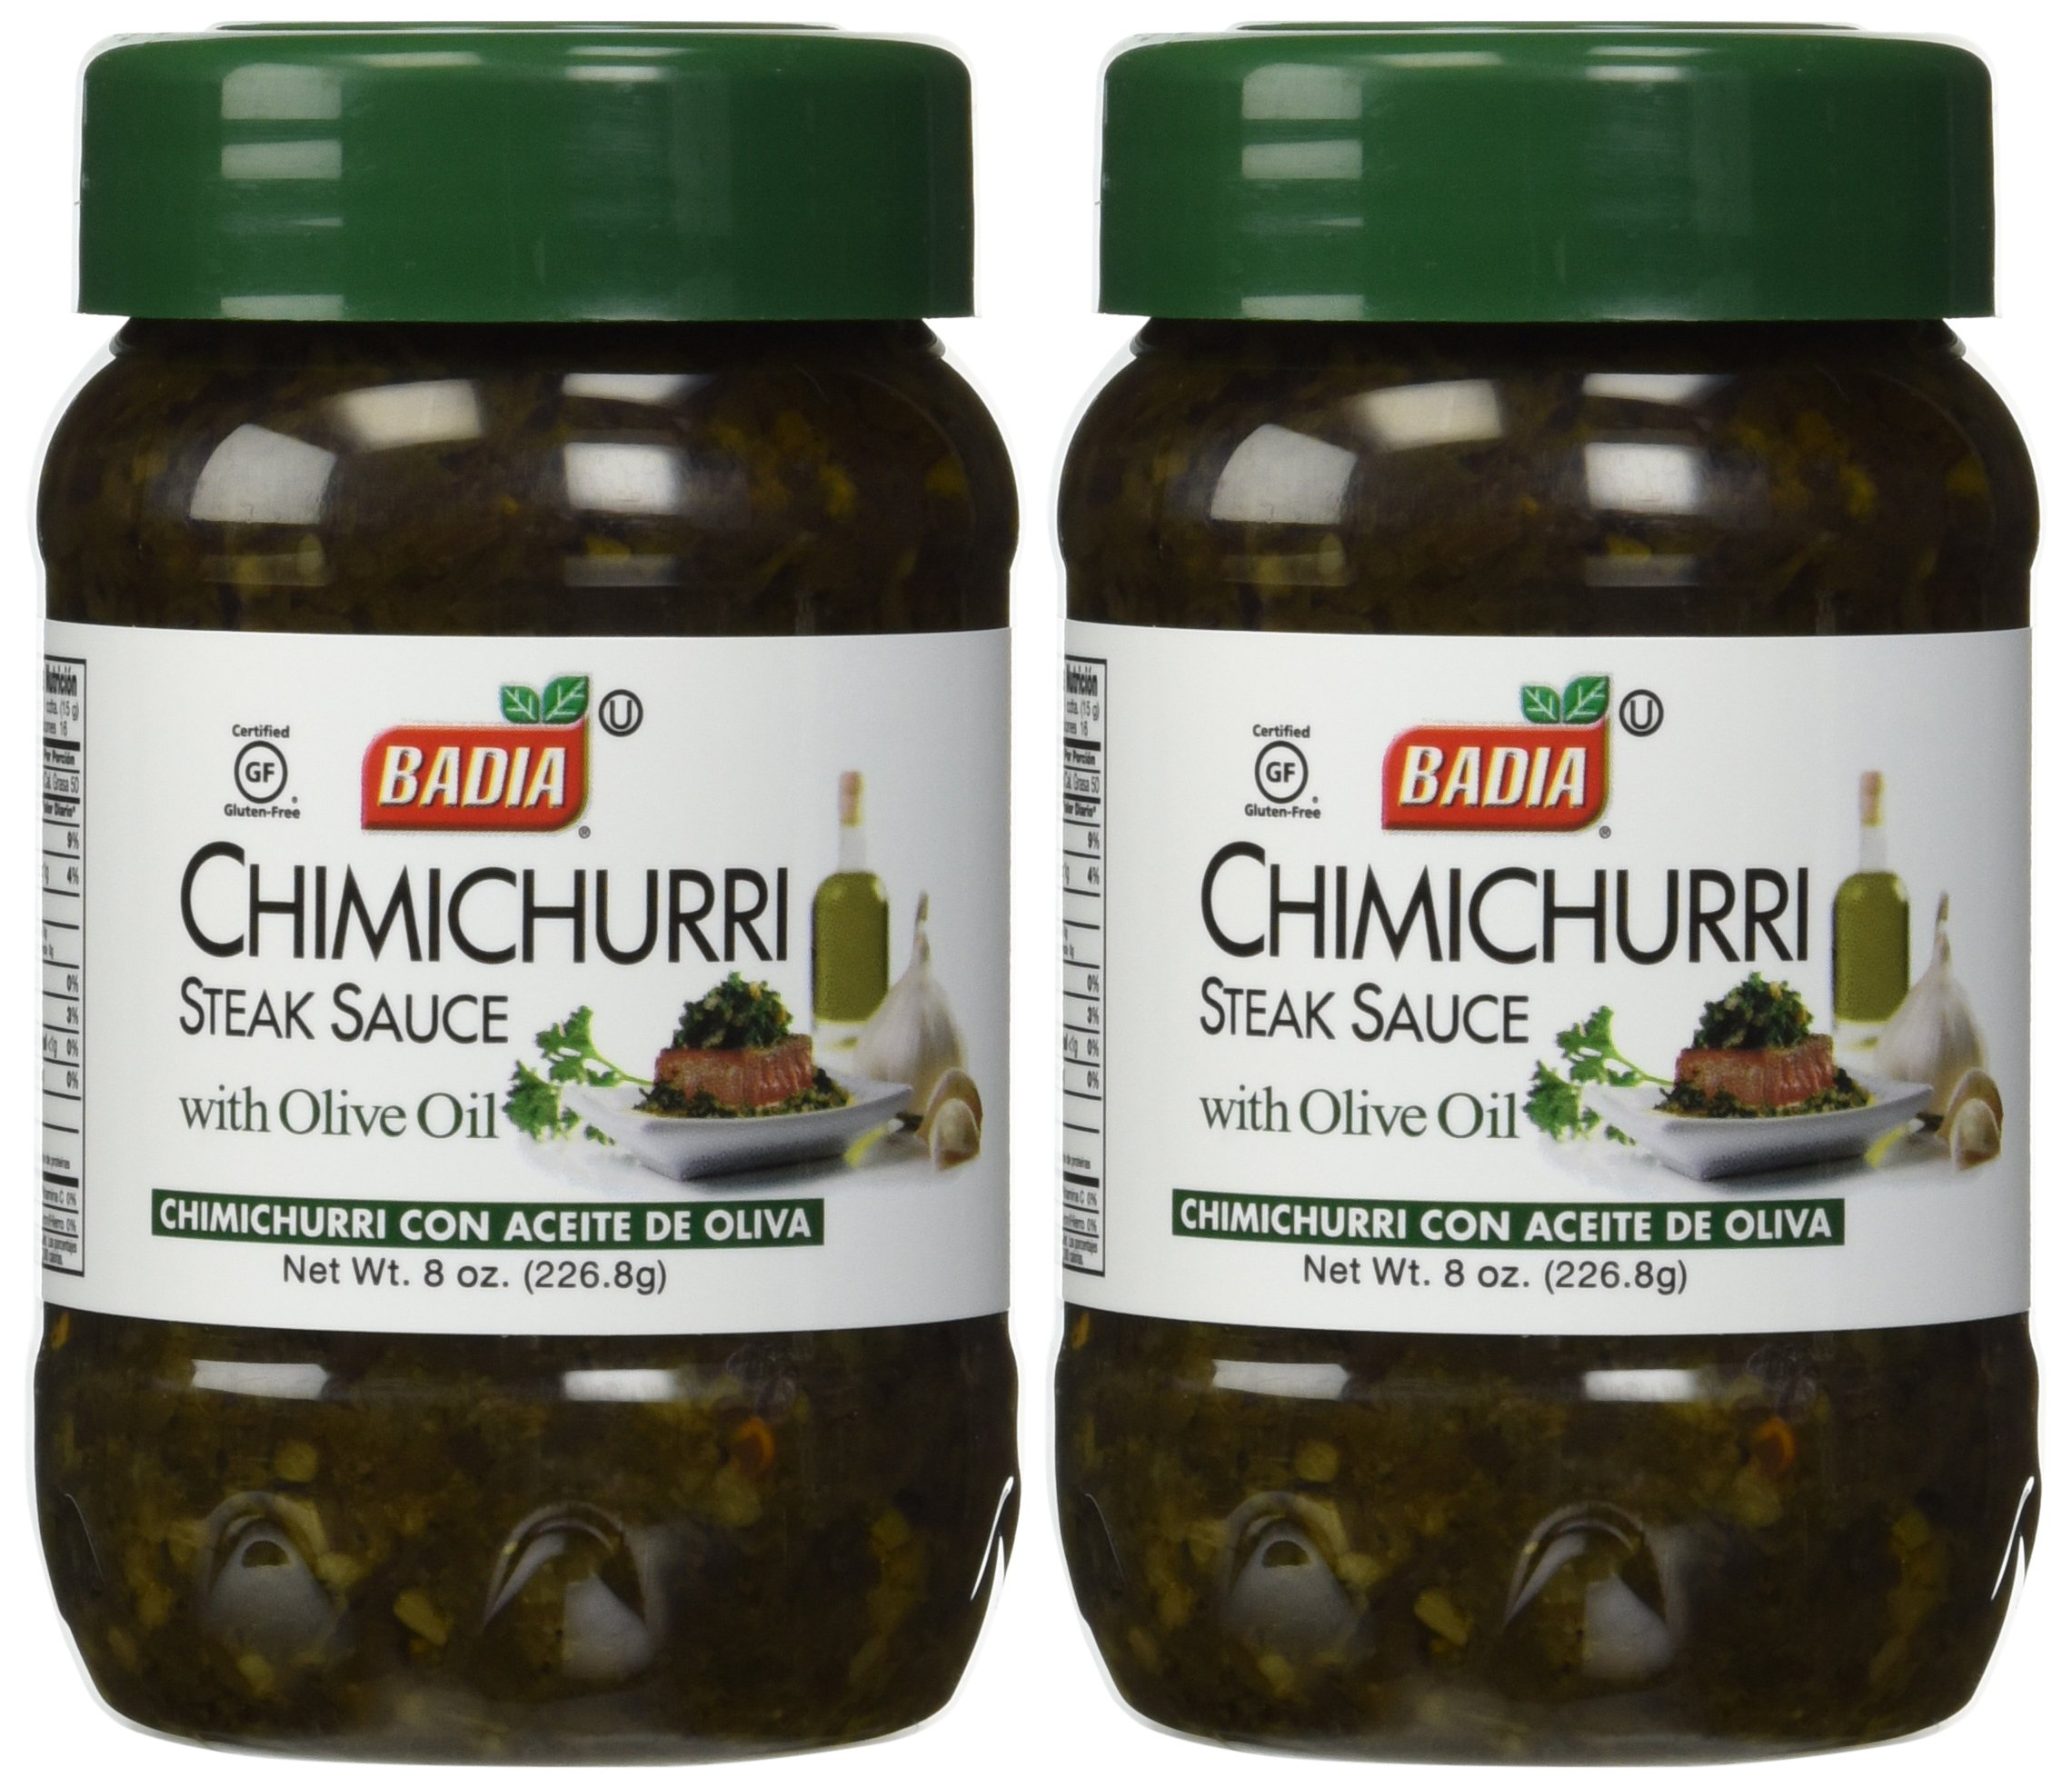 Amazon.com : Badia Chimichurri Steak Sauce with Olive Oil, 8 oz (2 Pack) : Chimmichurri : Grocery & Gourmet Food